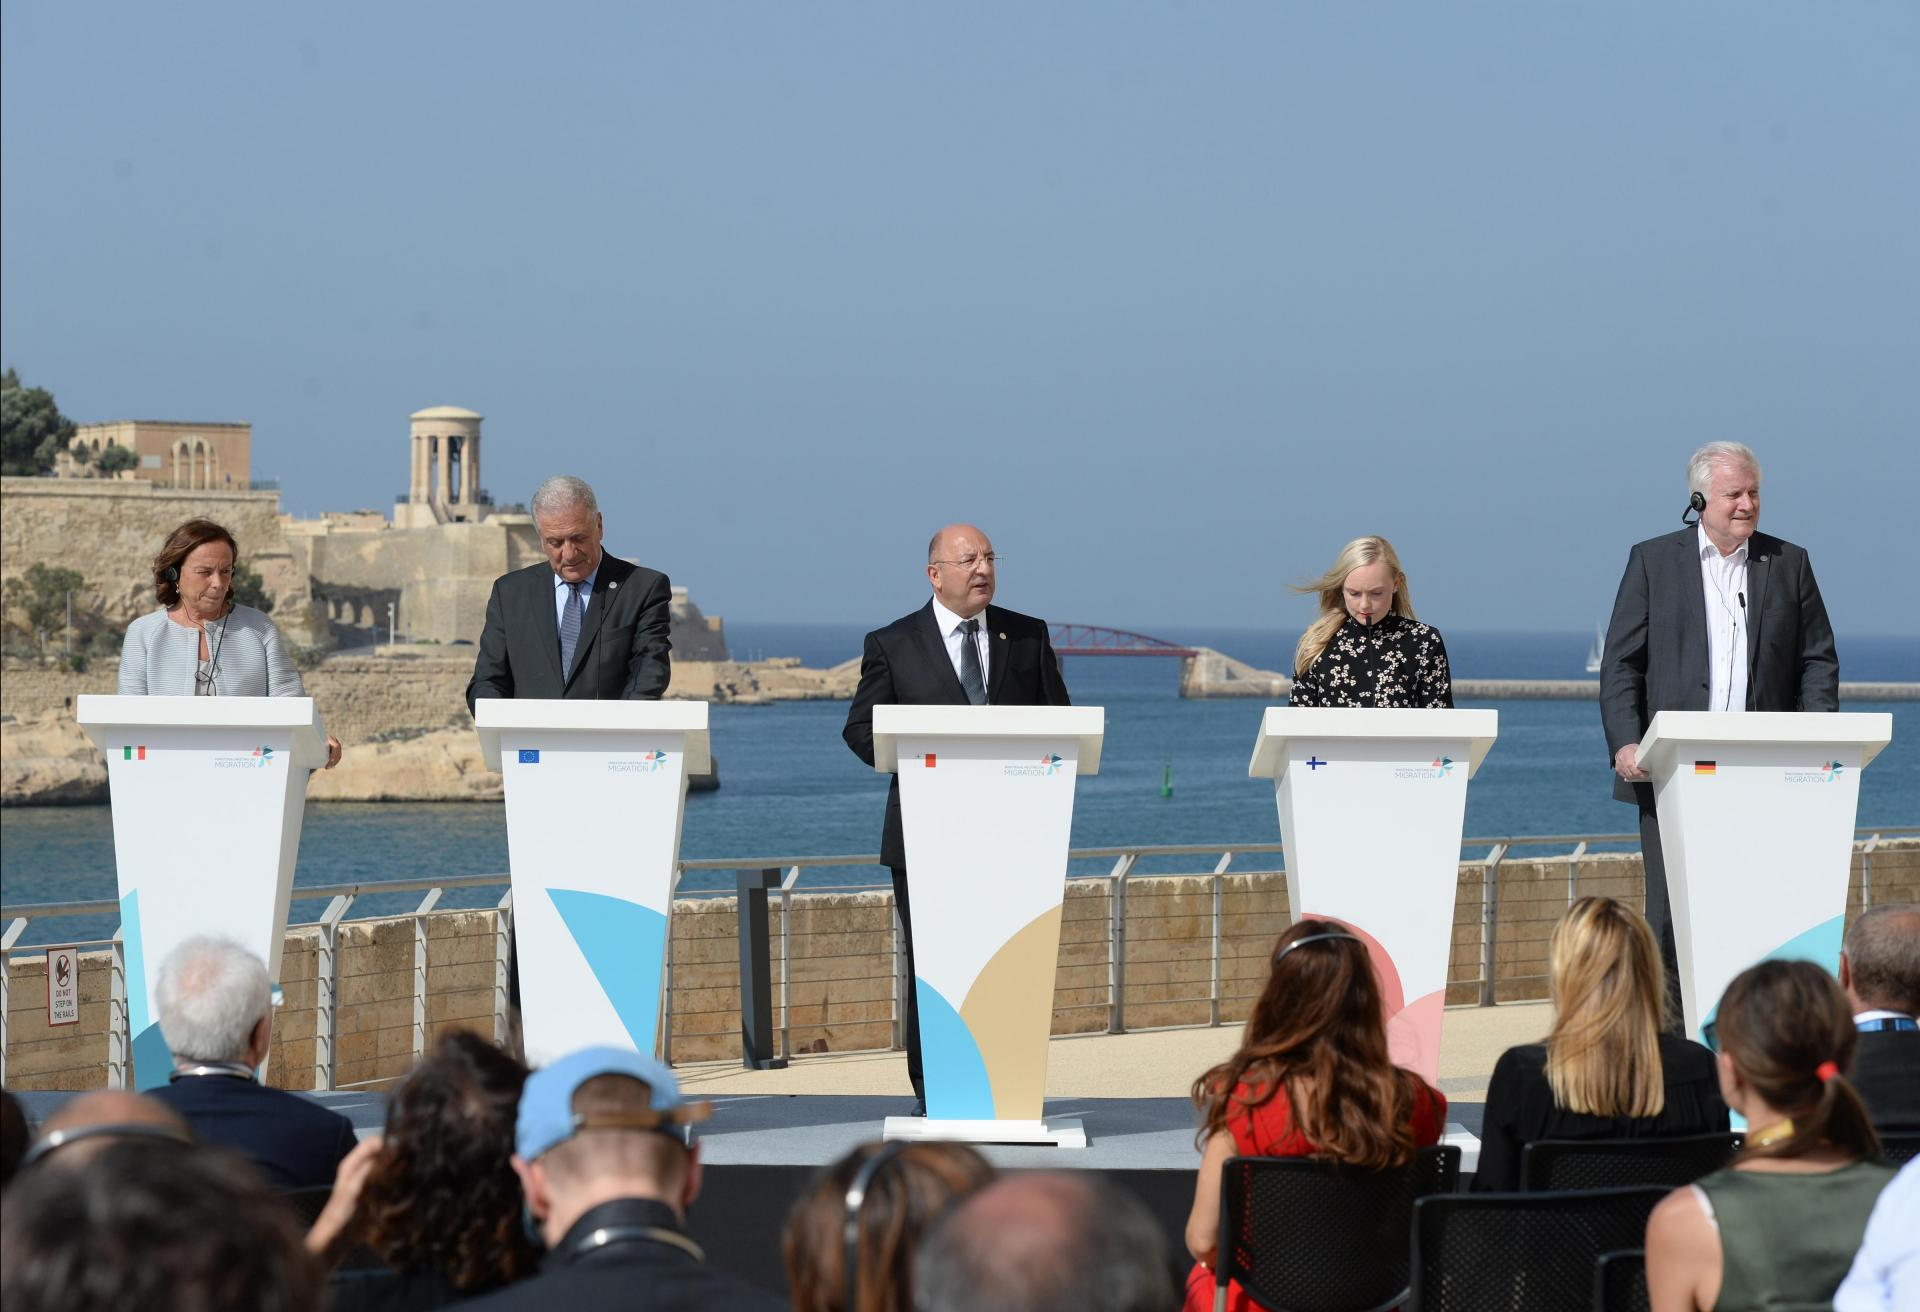 Malta tried to broker a voluntary migration deal last September, but efforts did not bear fruit. Photo: AFP